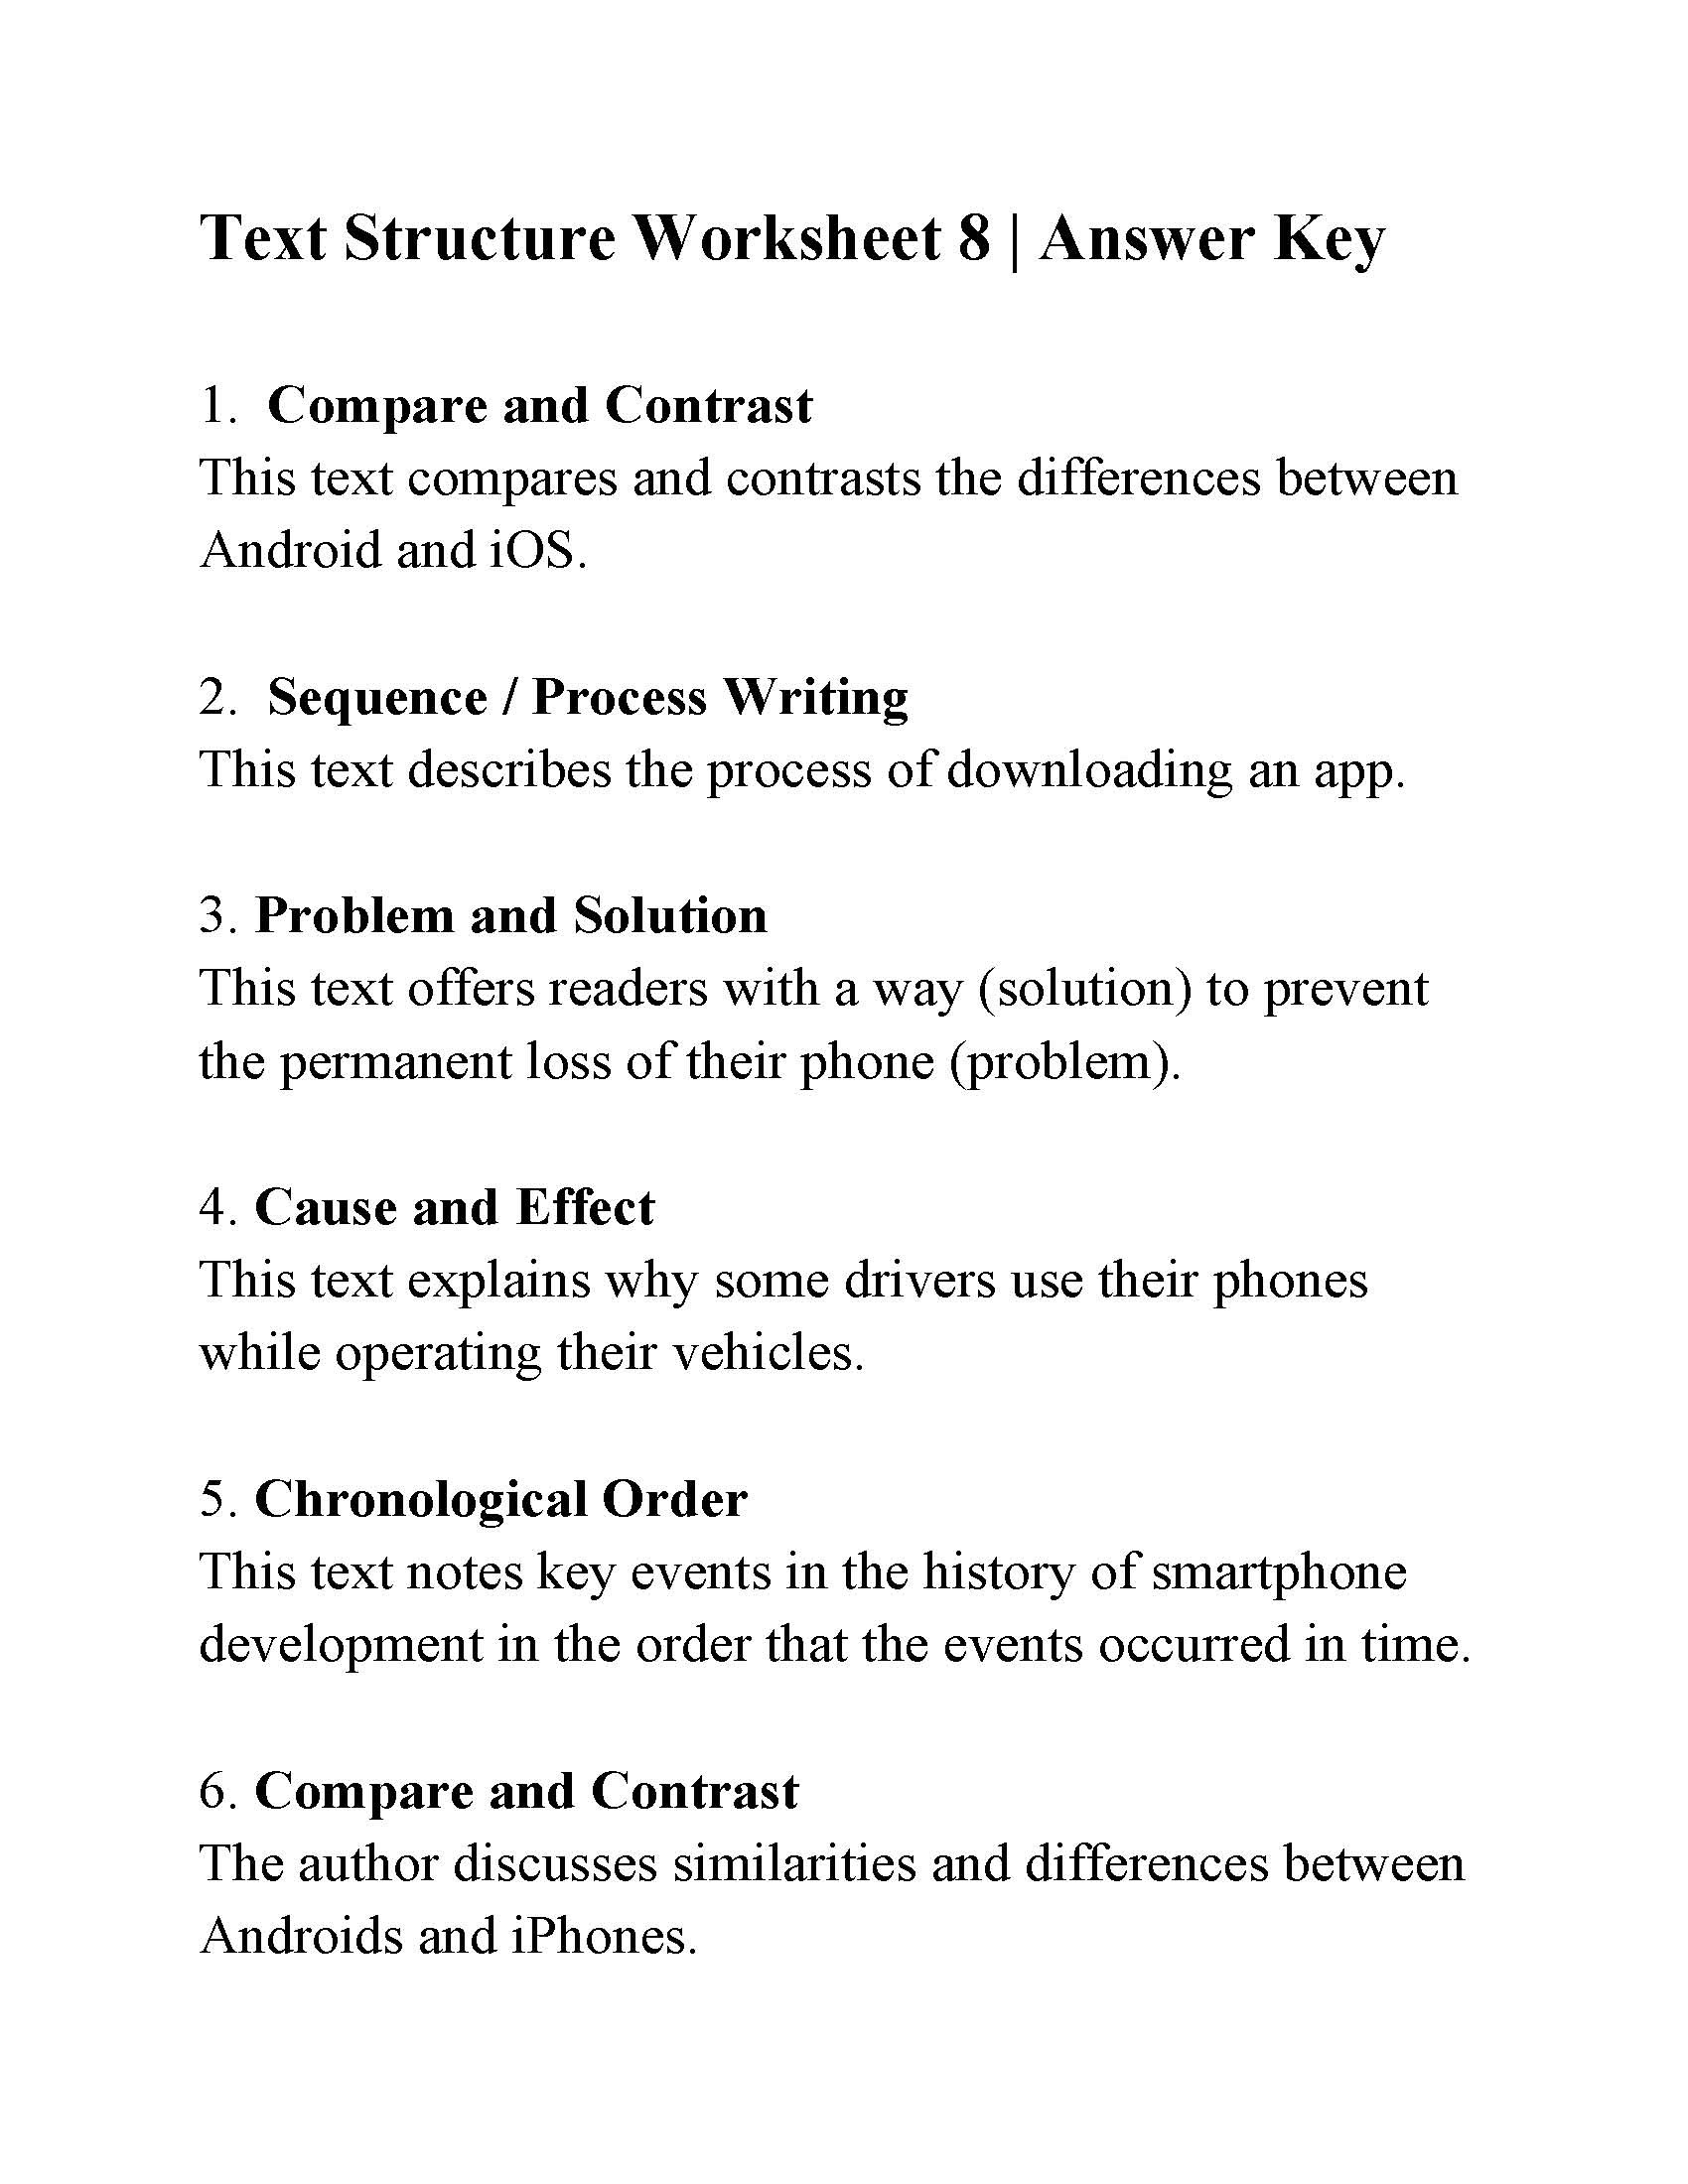 Text Structure Worksheets 3rd Grade Text Structure Worksheet Answers Ereading Worksheets Year